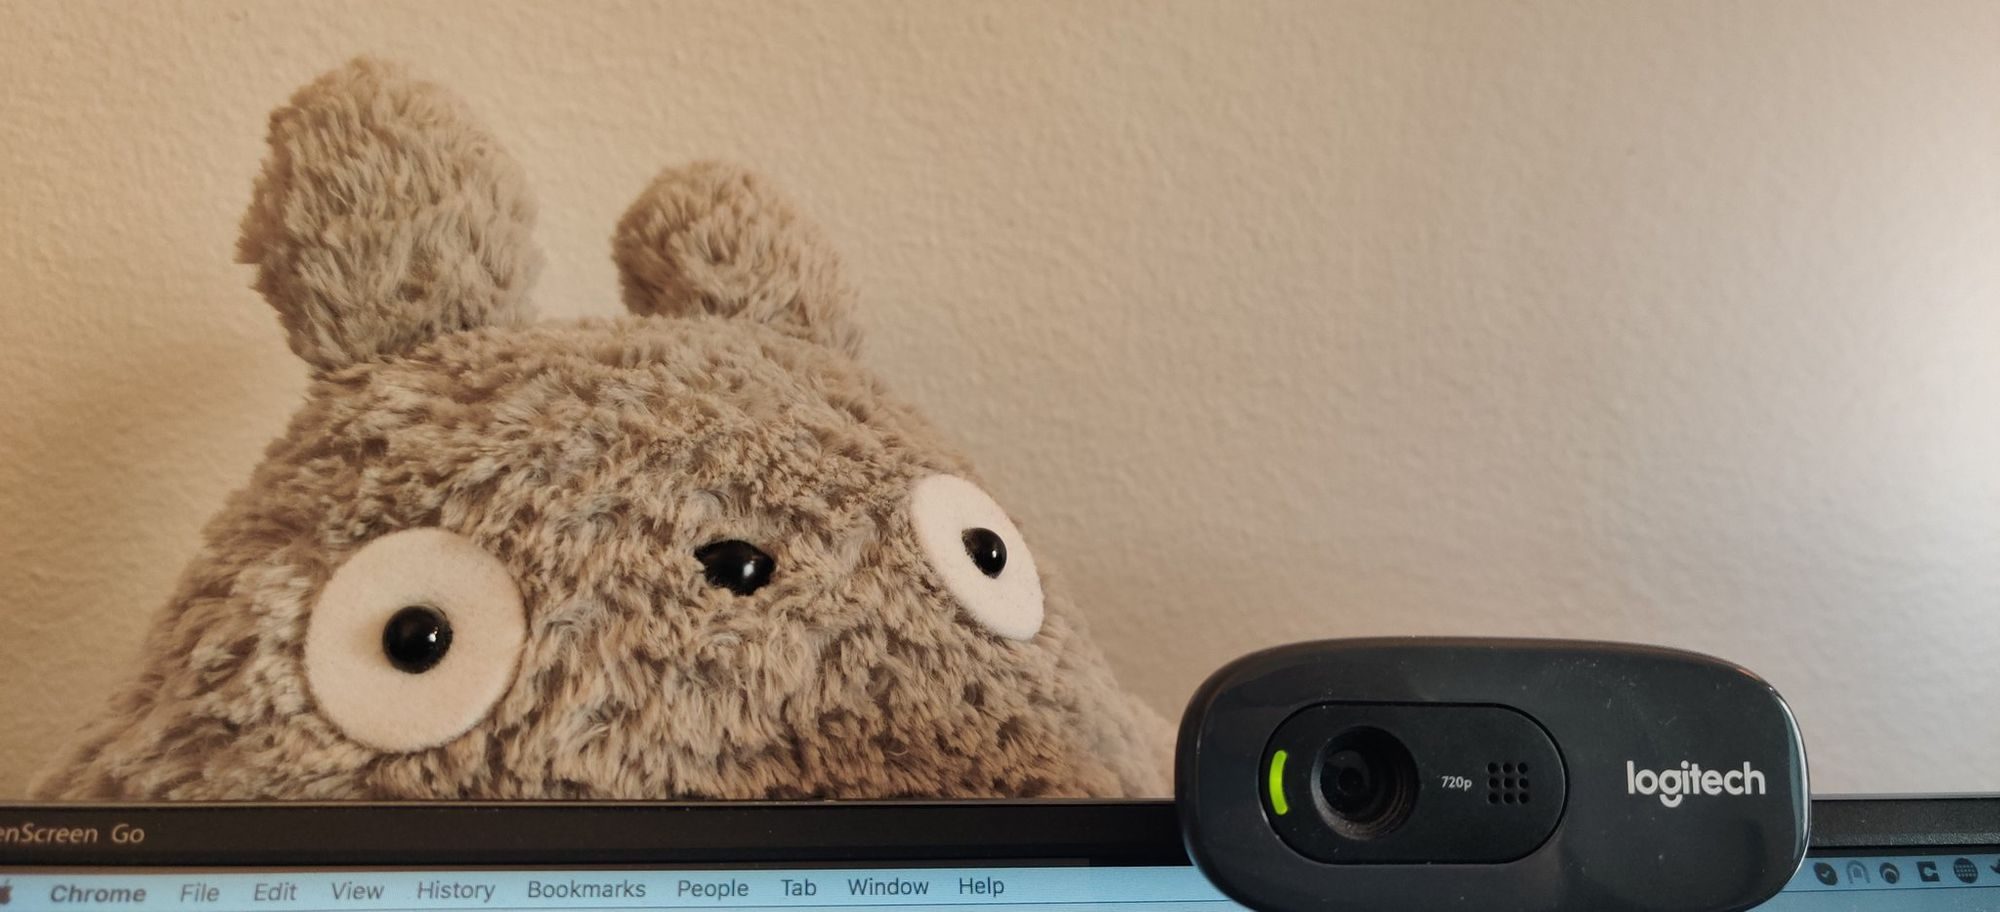 Plush Totoro sitting partially behind a screen and a webcam pointed towards the camera.